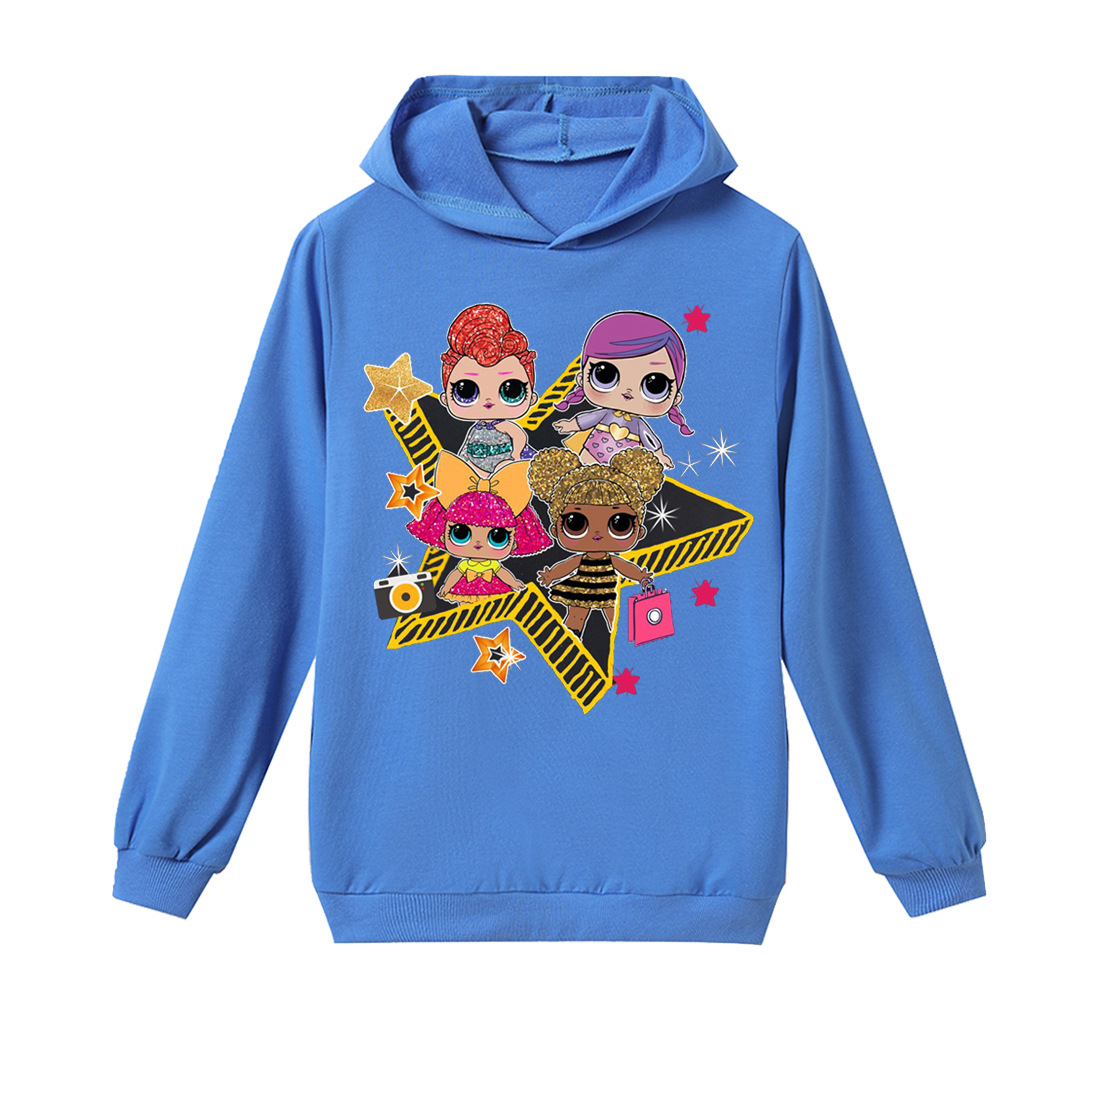 b2a1a5e50 New hoodie LOL surprise doll children clothing autumn and winter baby girl  lolirock Tshirt 100% cotton Kids cartoon Sweatshirts-in Hoodies &  Sweatshirts ...